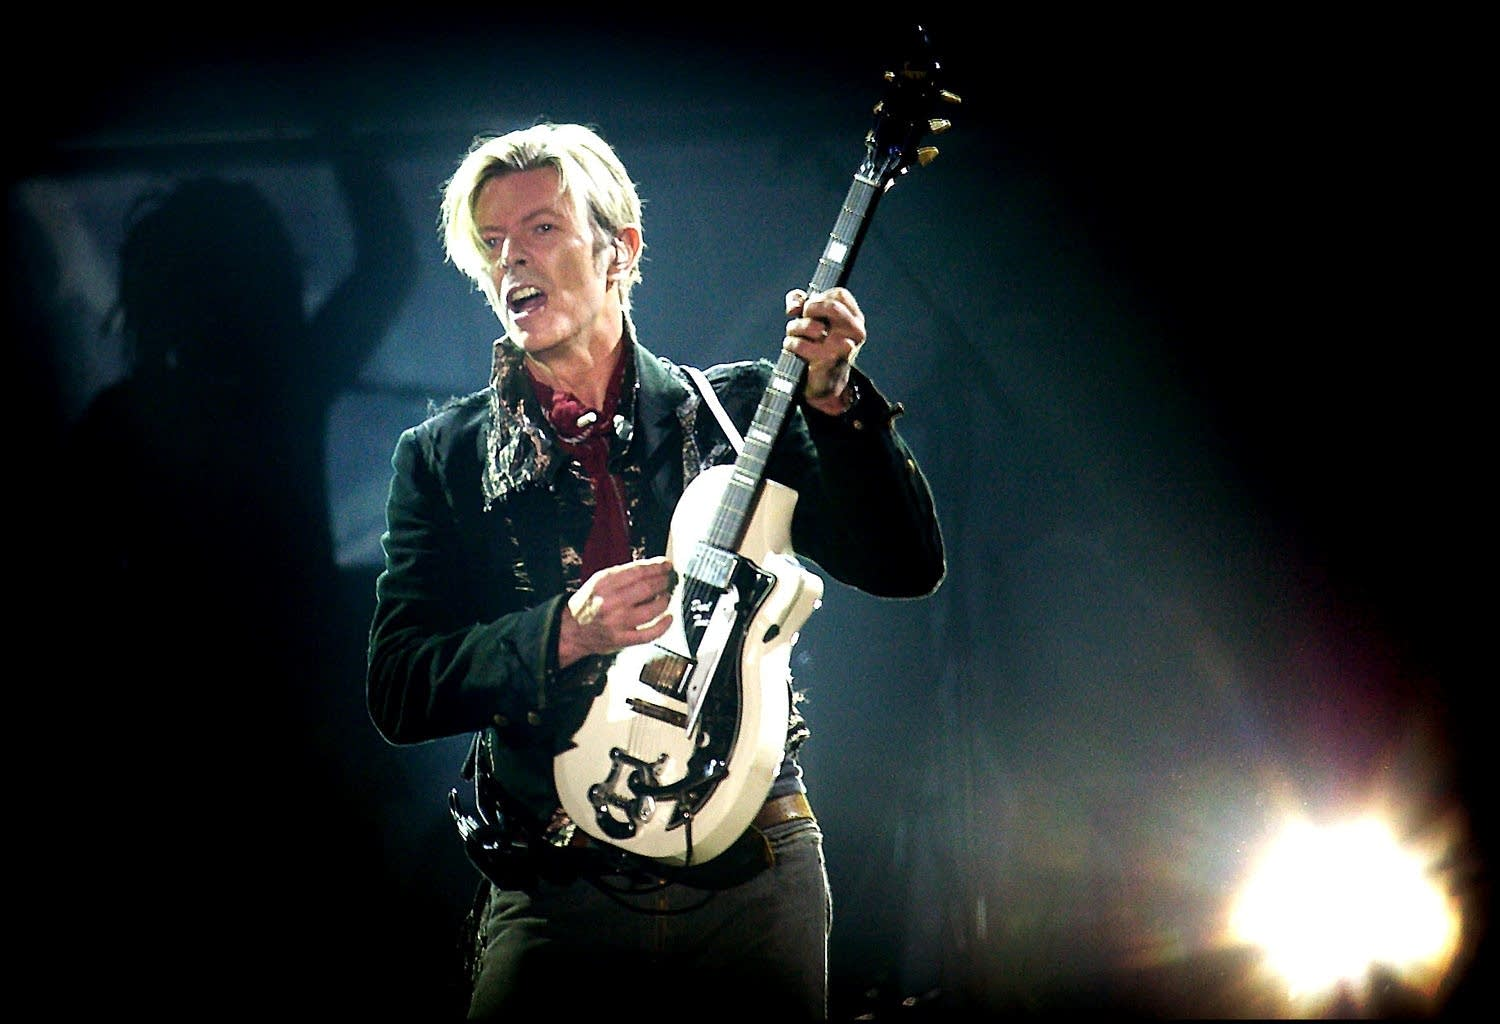 Rock legend David Bowie performs